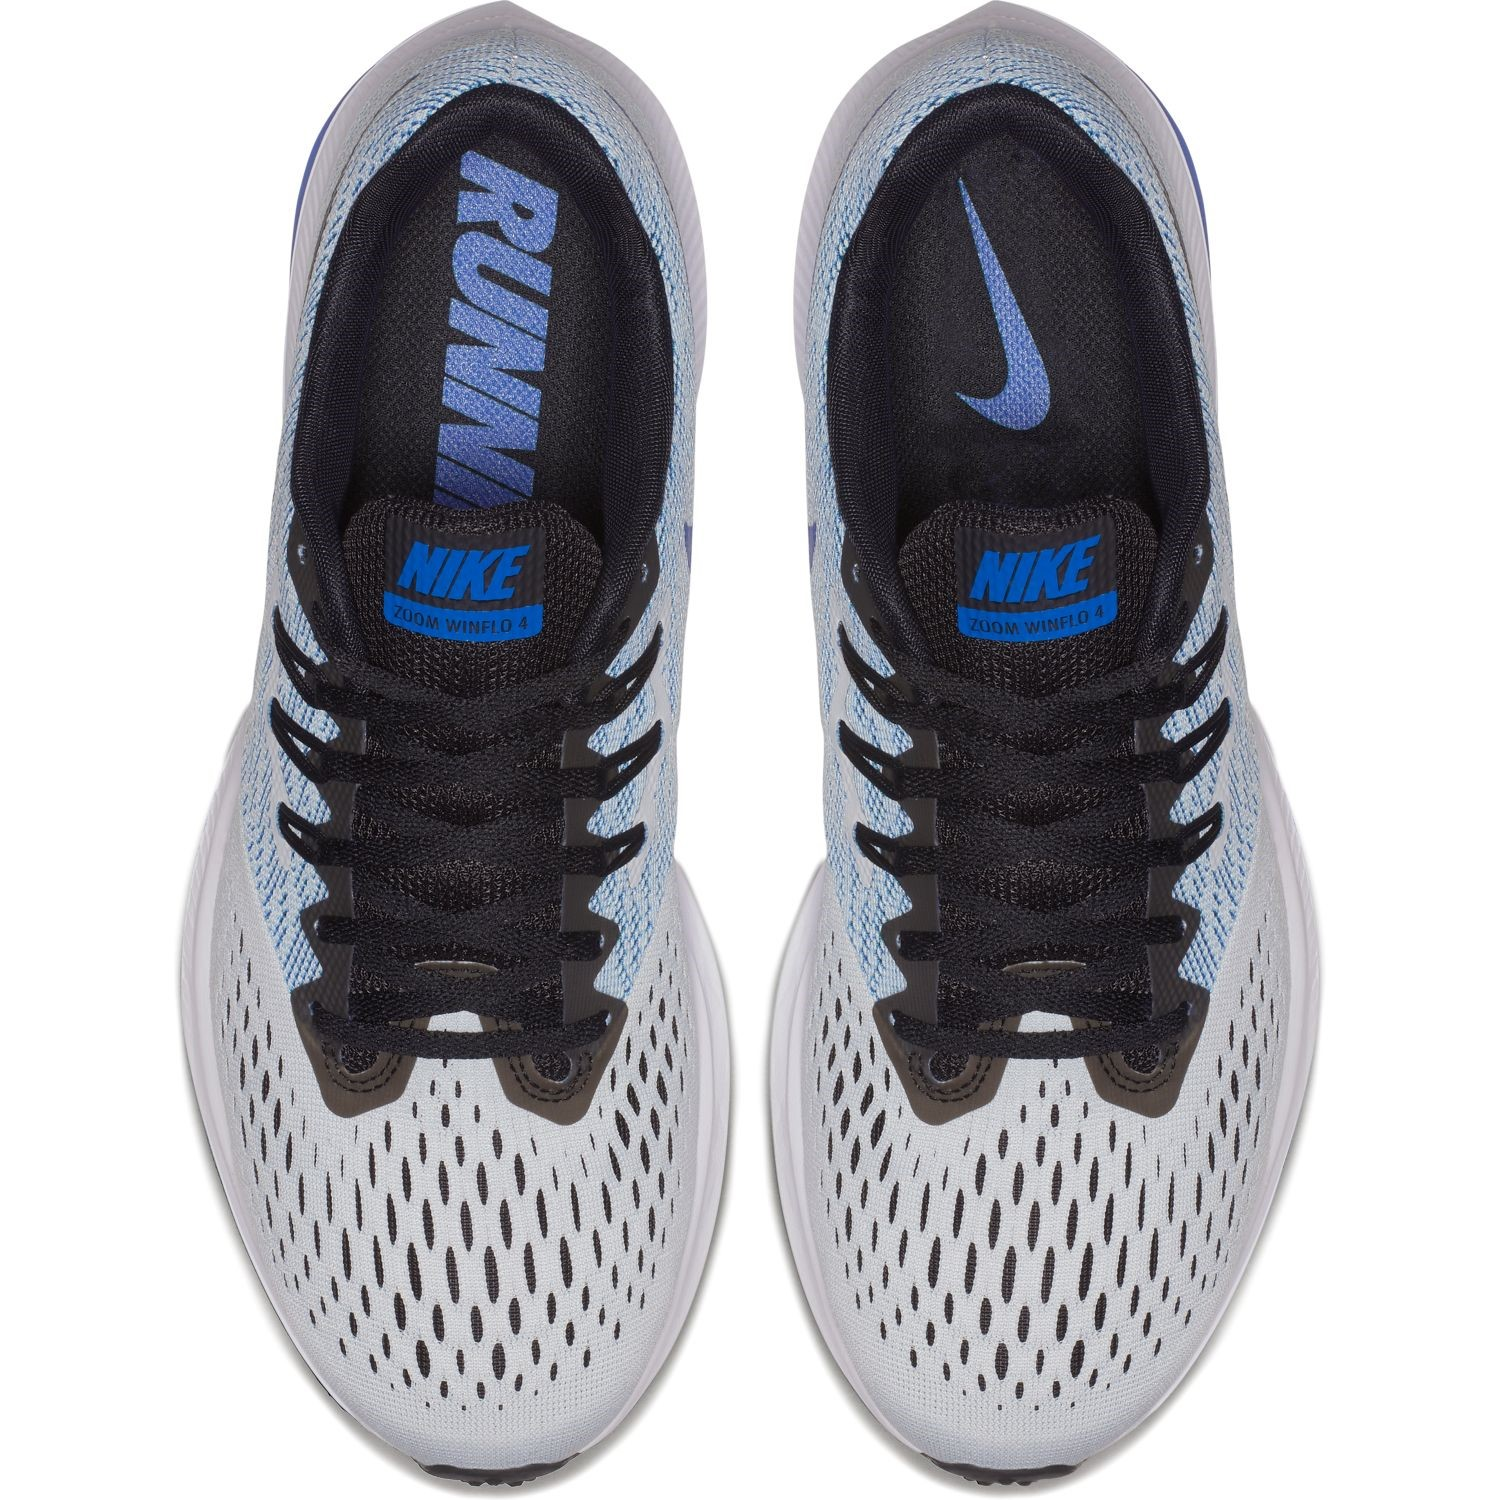 c58b6547dc8 Nike Zoom Winflo 4 - Mens Running Shoes - Pure Platinum Black Hyper Royal